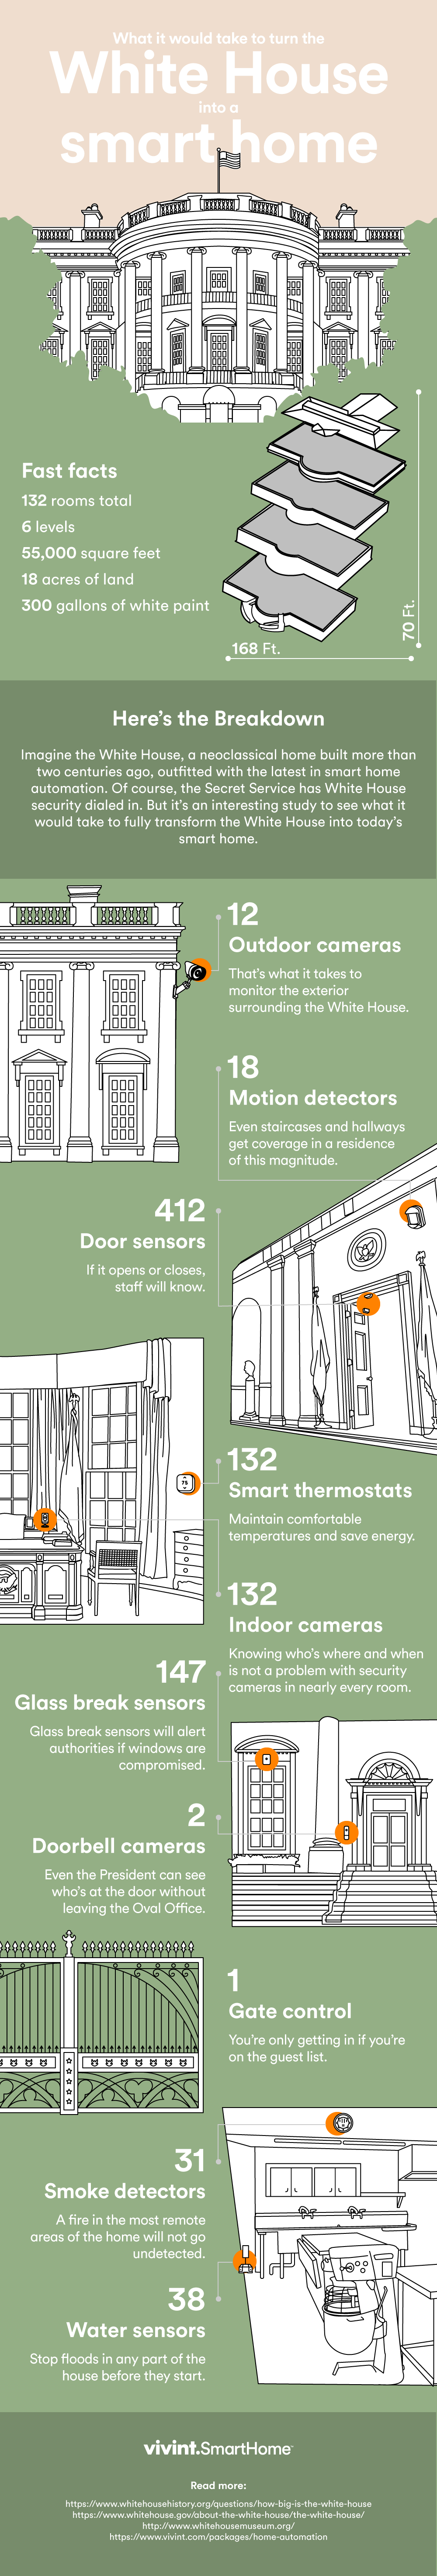 Infographic: Turn the White House into a Smart Home - Vivint Smart Home